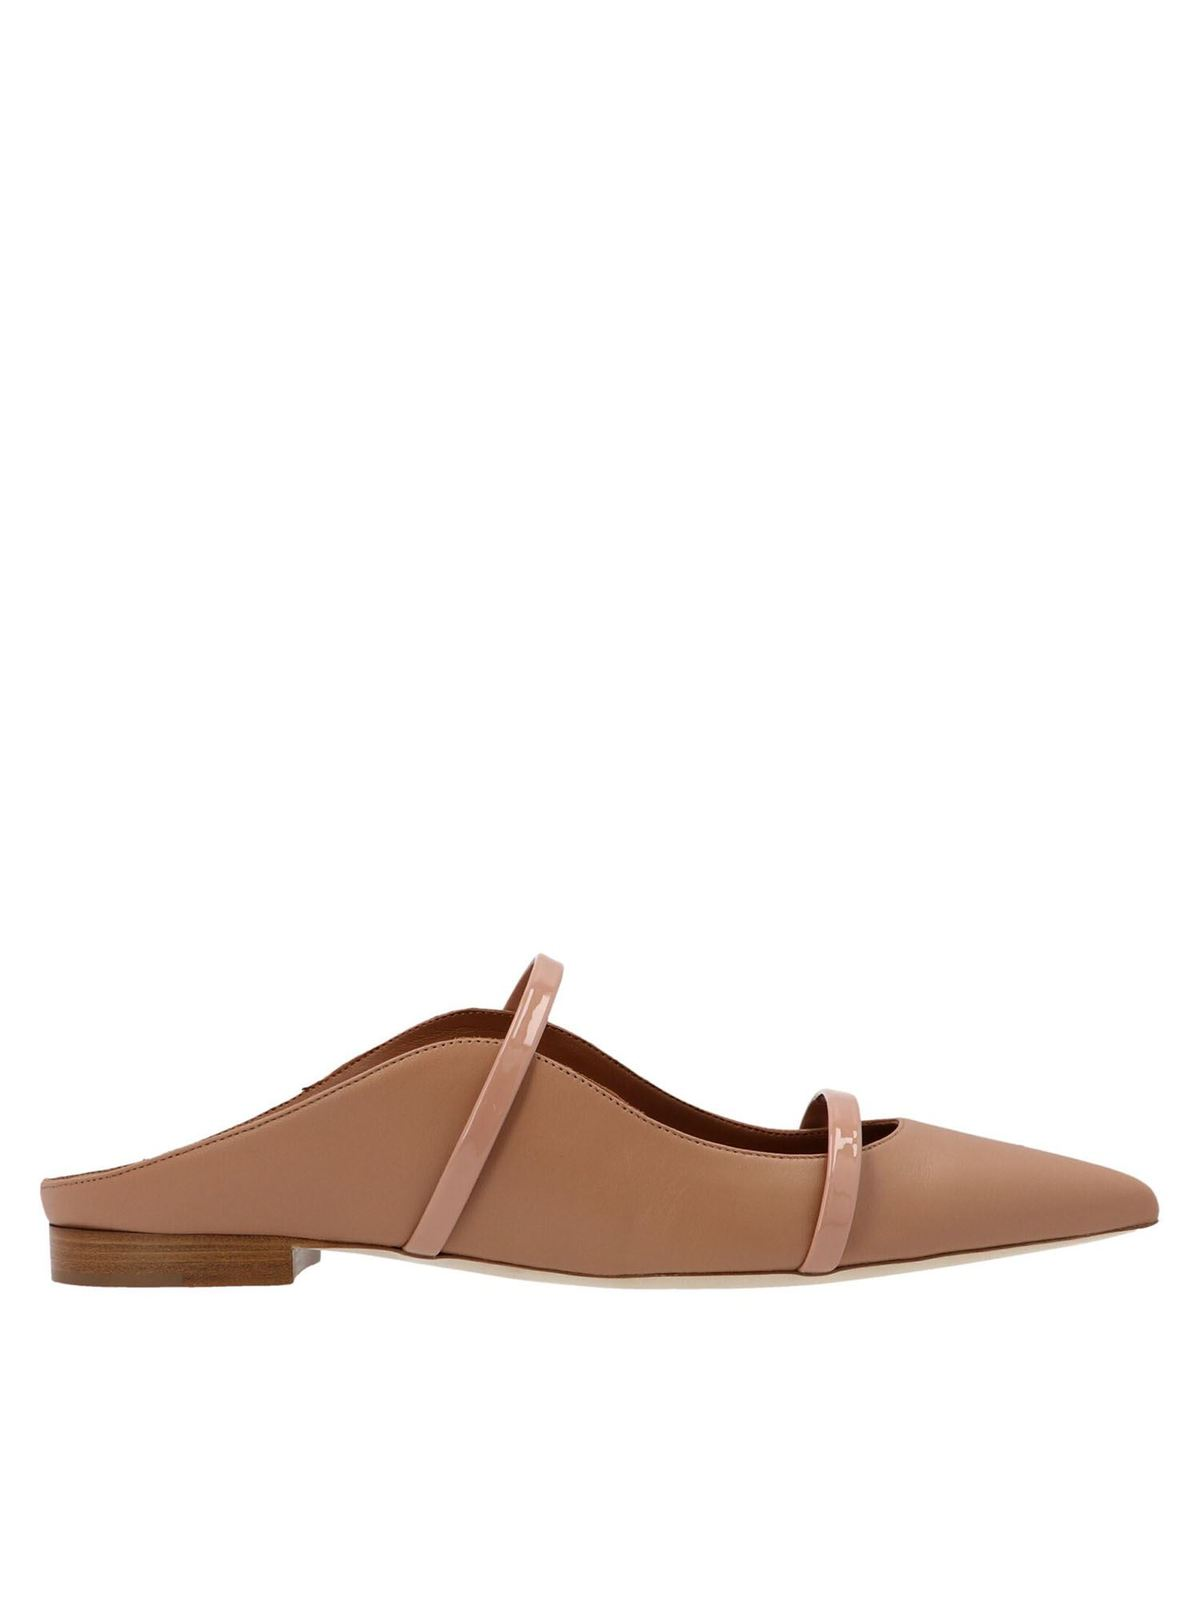 Malone Souliers MAUREEN MULES IN NUDE BLUSH